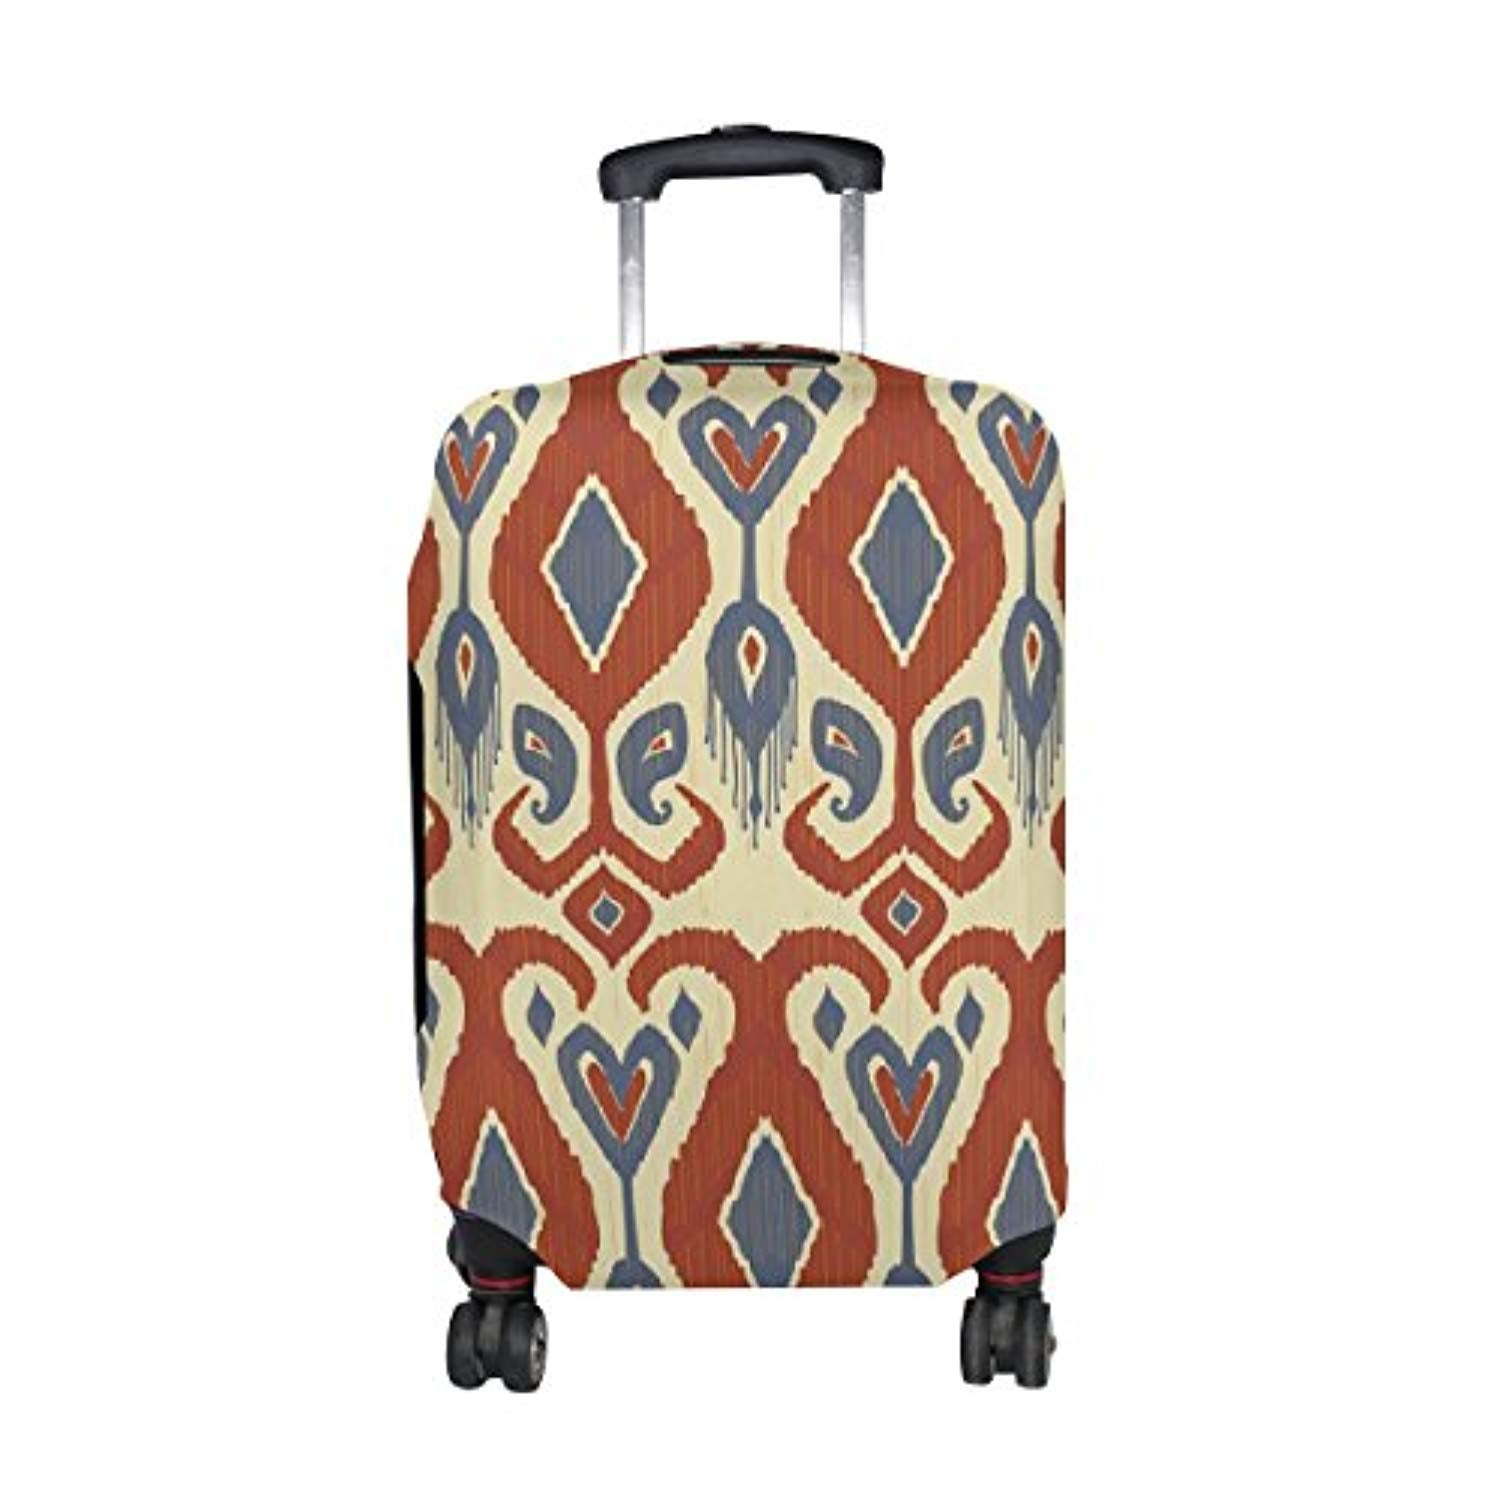 African Art Tribal Print Travel Luggage Protector Baggage Suitcase Cover Fits 18-20 Inch Luggage - Ufumbuzi - Home